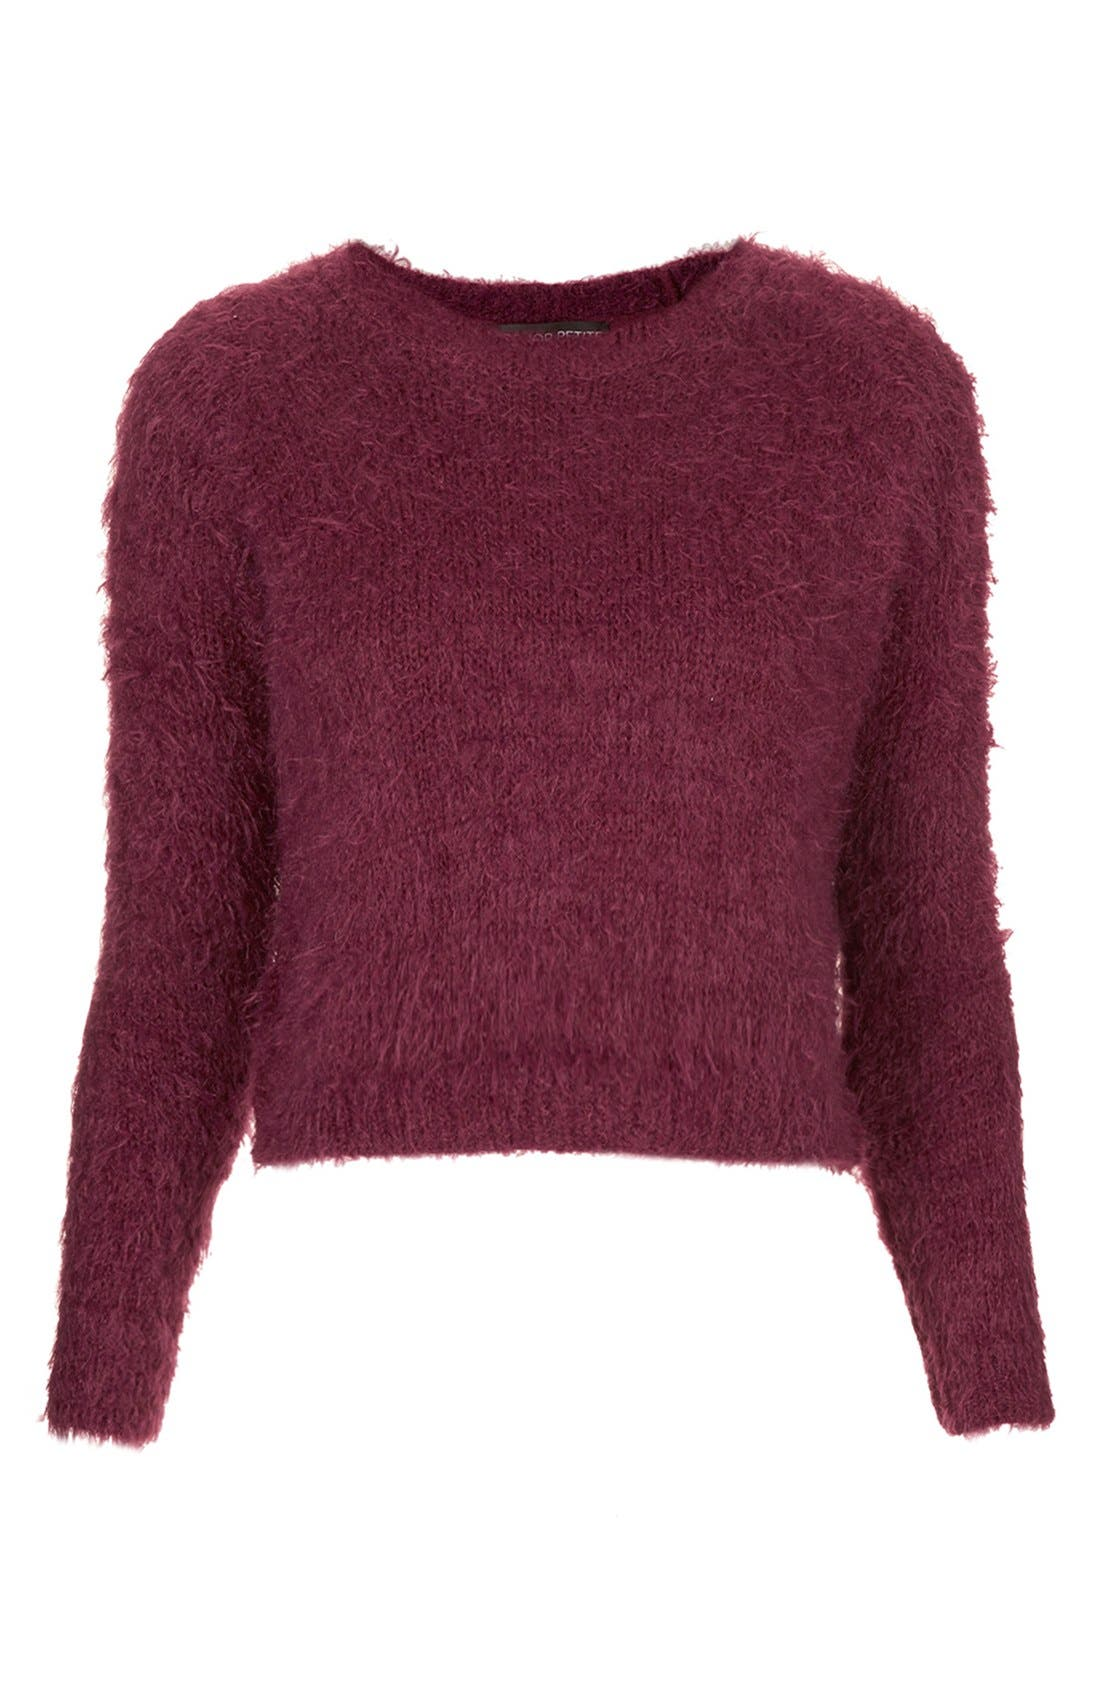 Alternate Image 3  - Topshop Textured Crewneck Sweater (Petite)